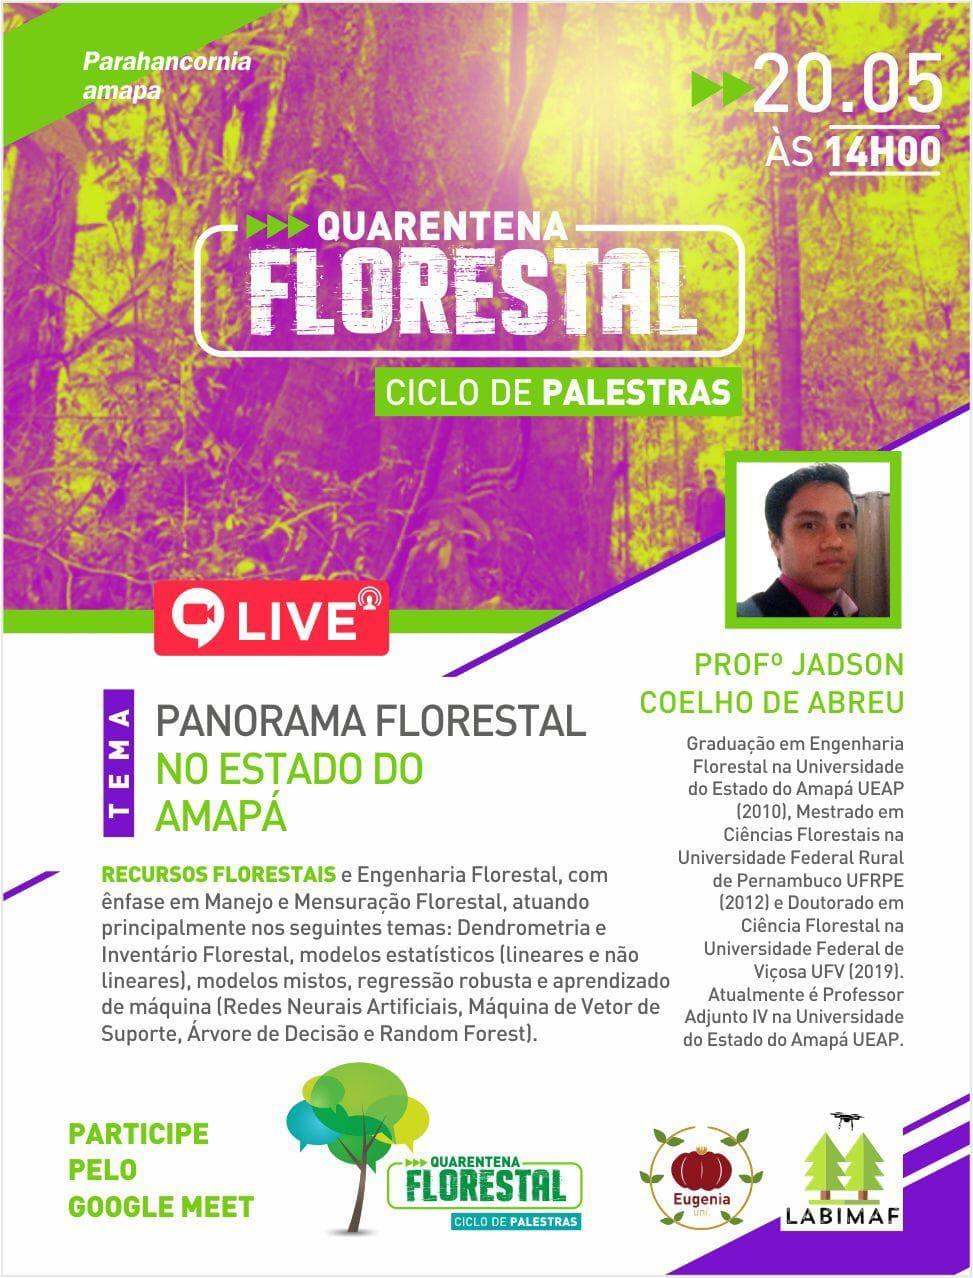 Palestra Panorama Florestal do Estado do Amapá